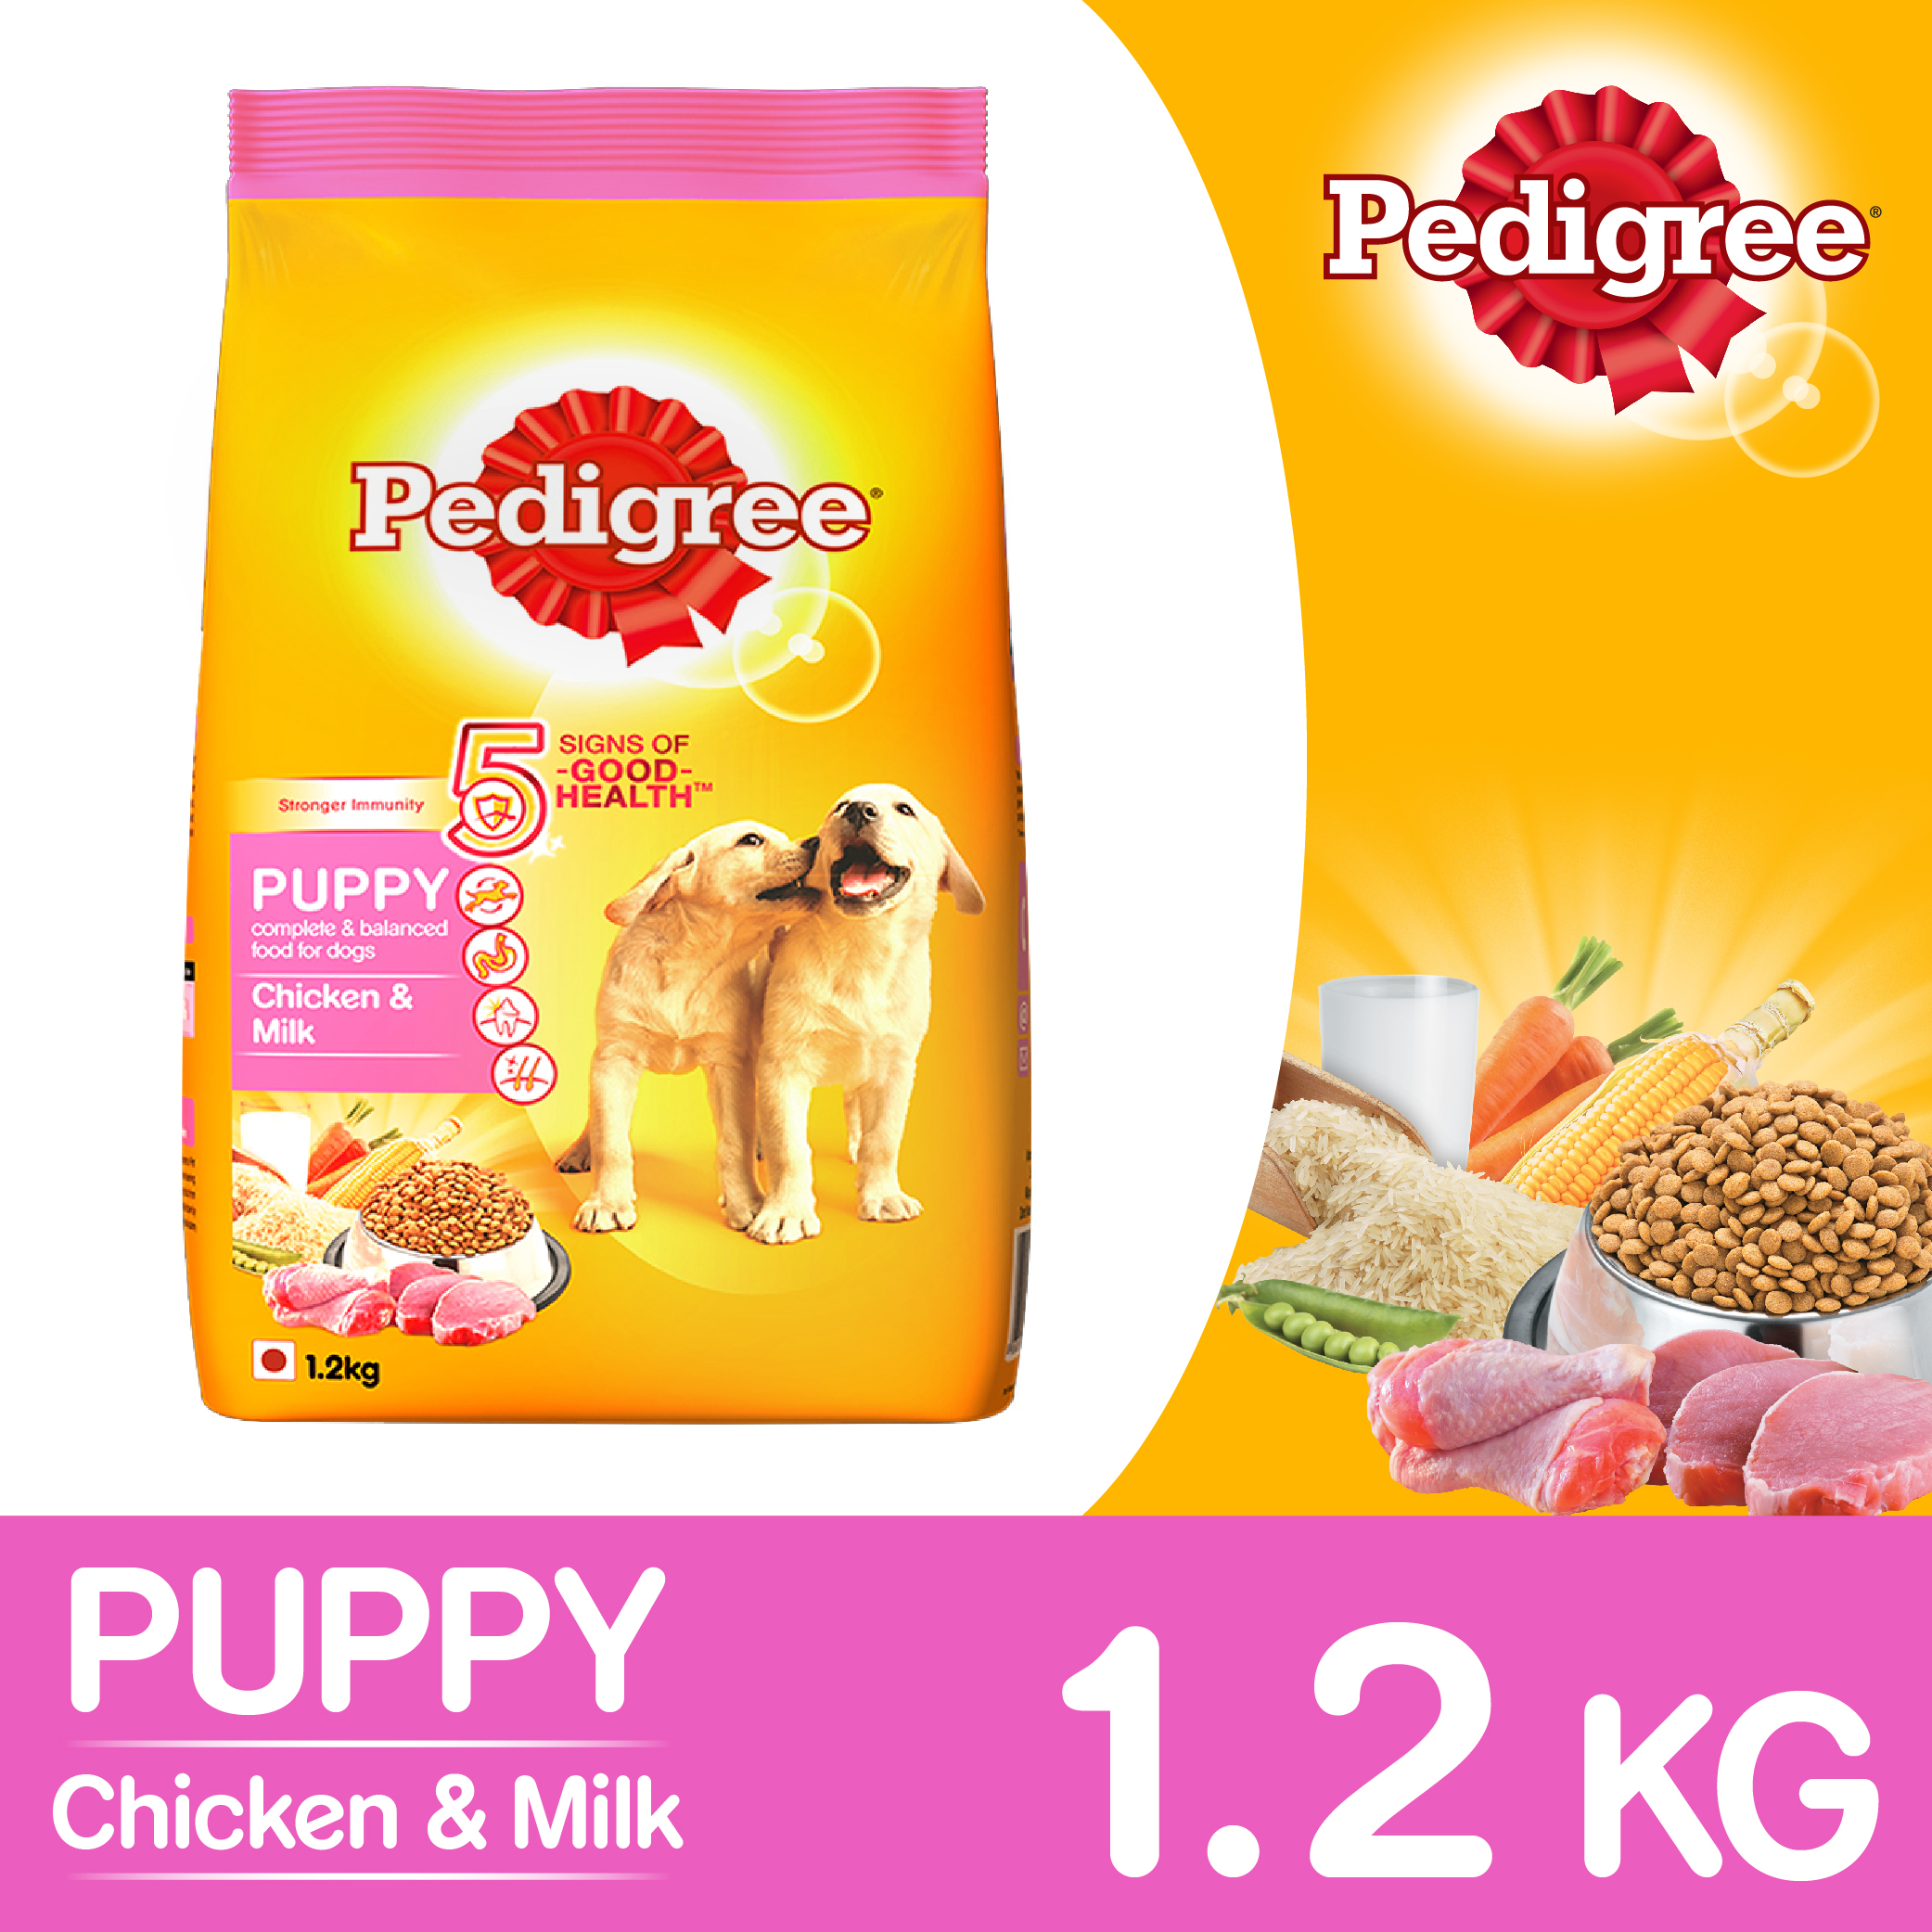 Pedigree Dog Food Prices South Africa